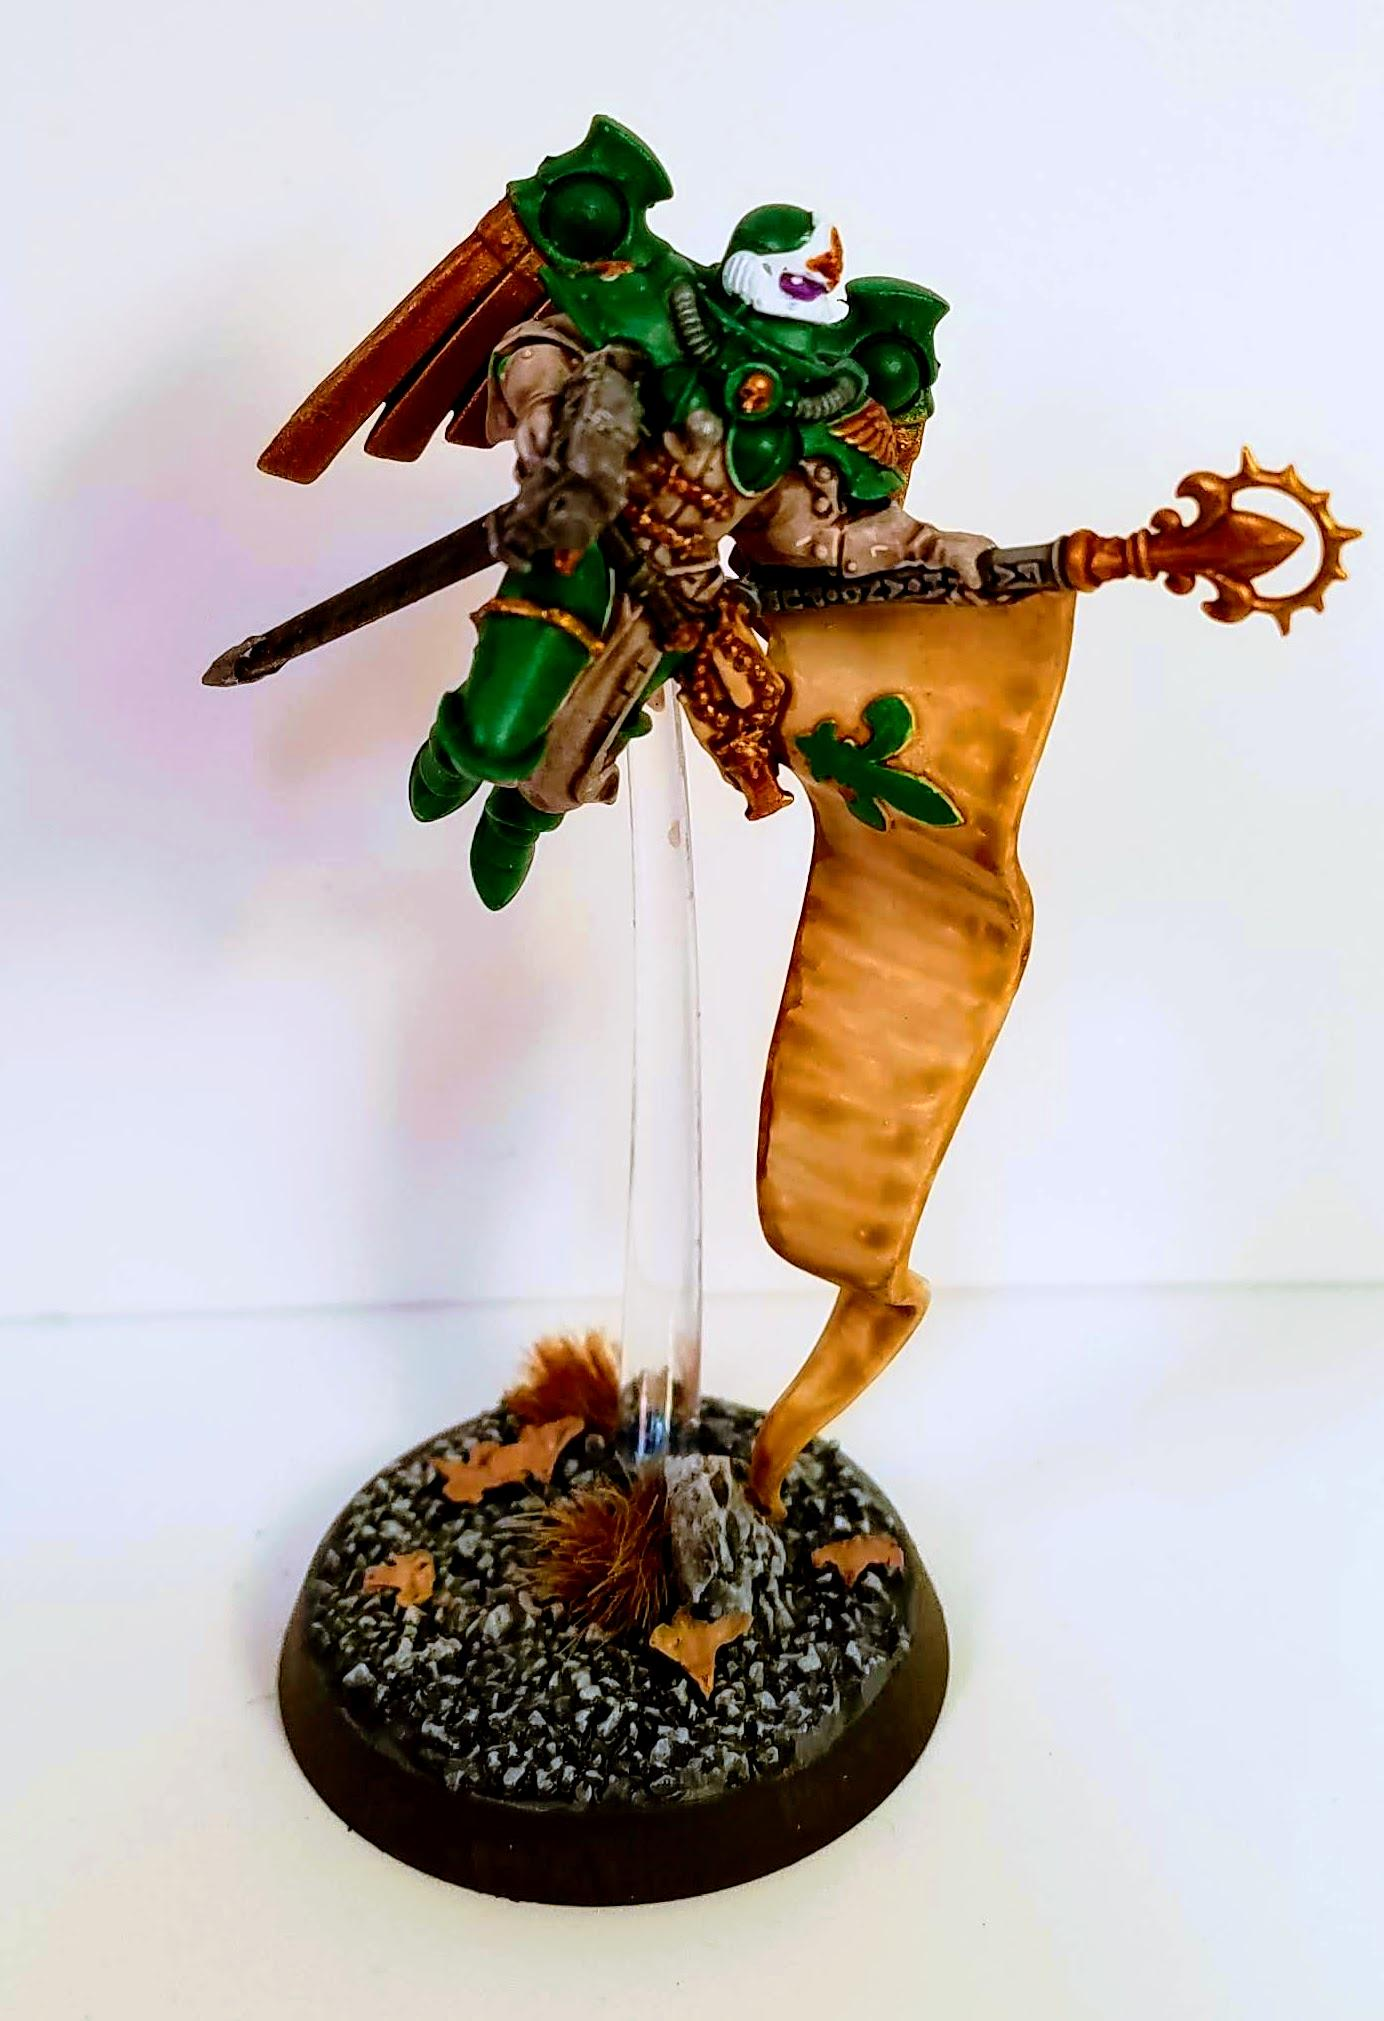 Converted Zephyrim Superior with Pennant